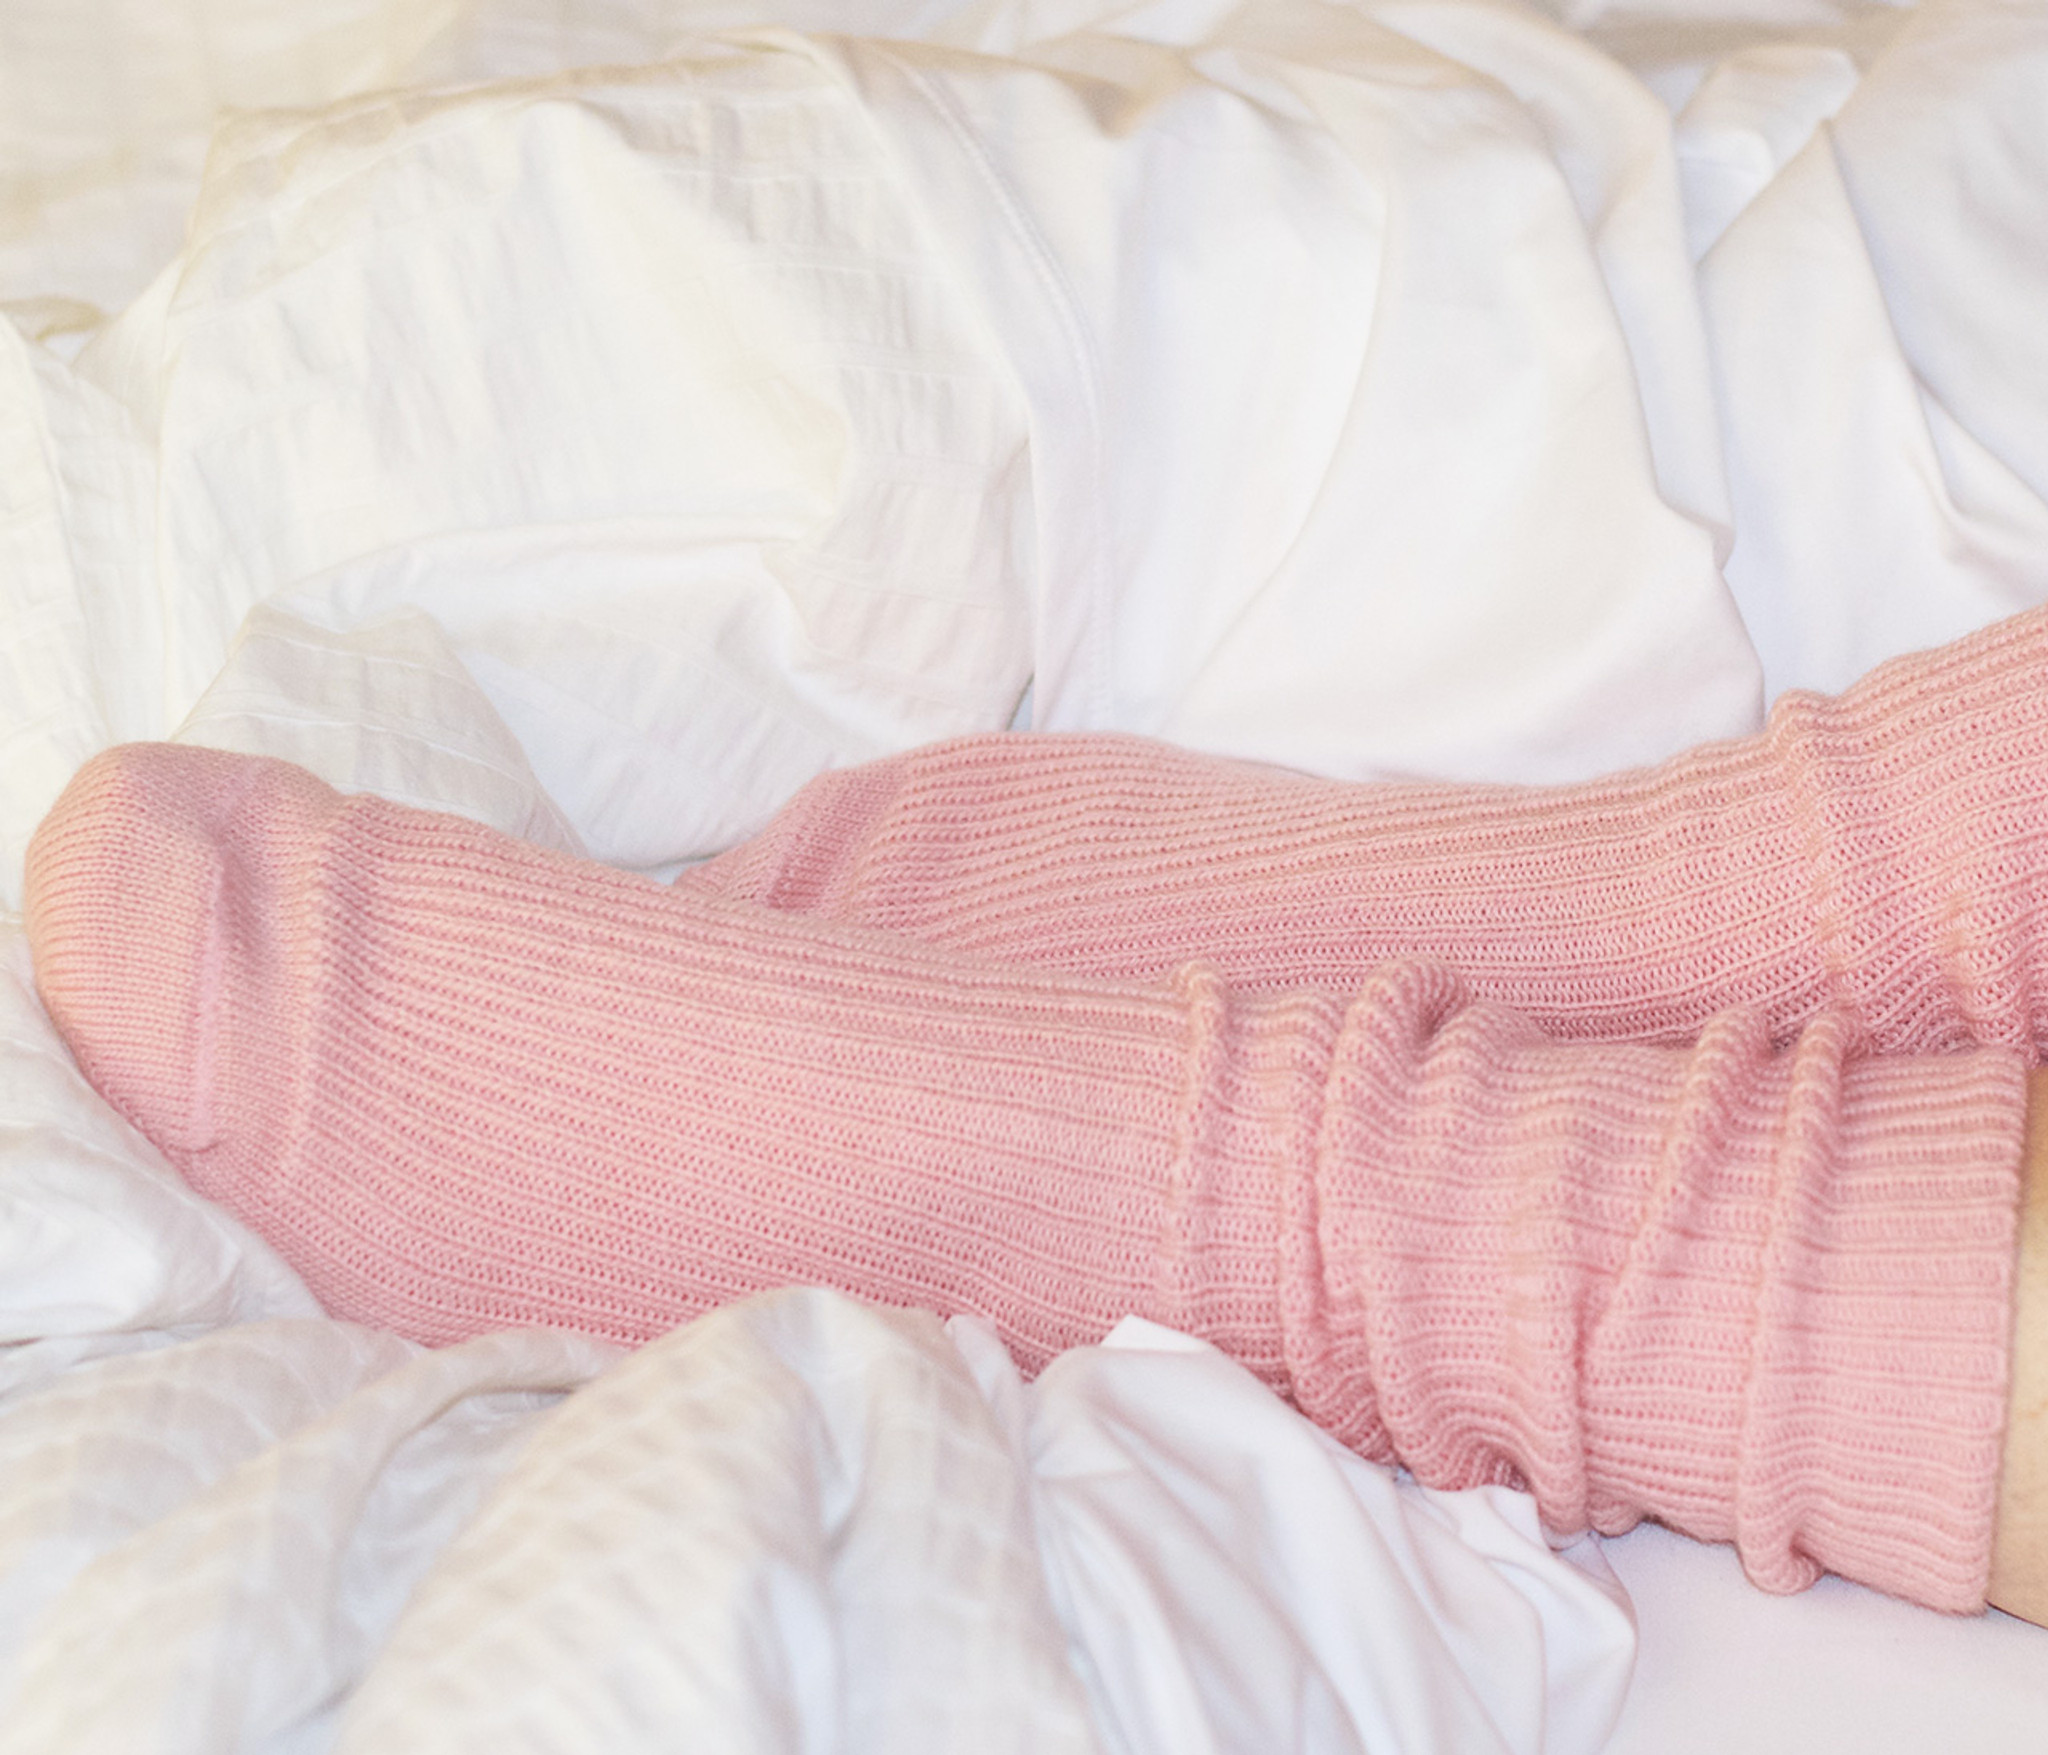 3875384e6 Baby Alpaca Bed Socks - Relax with warm cozy feet